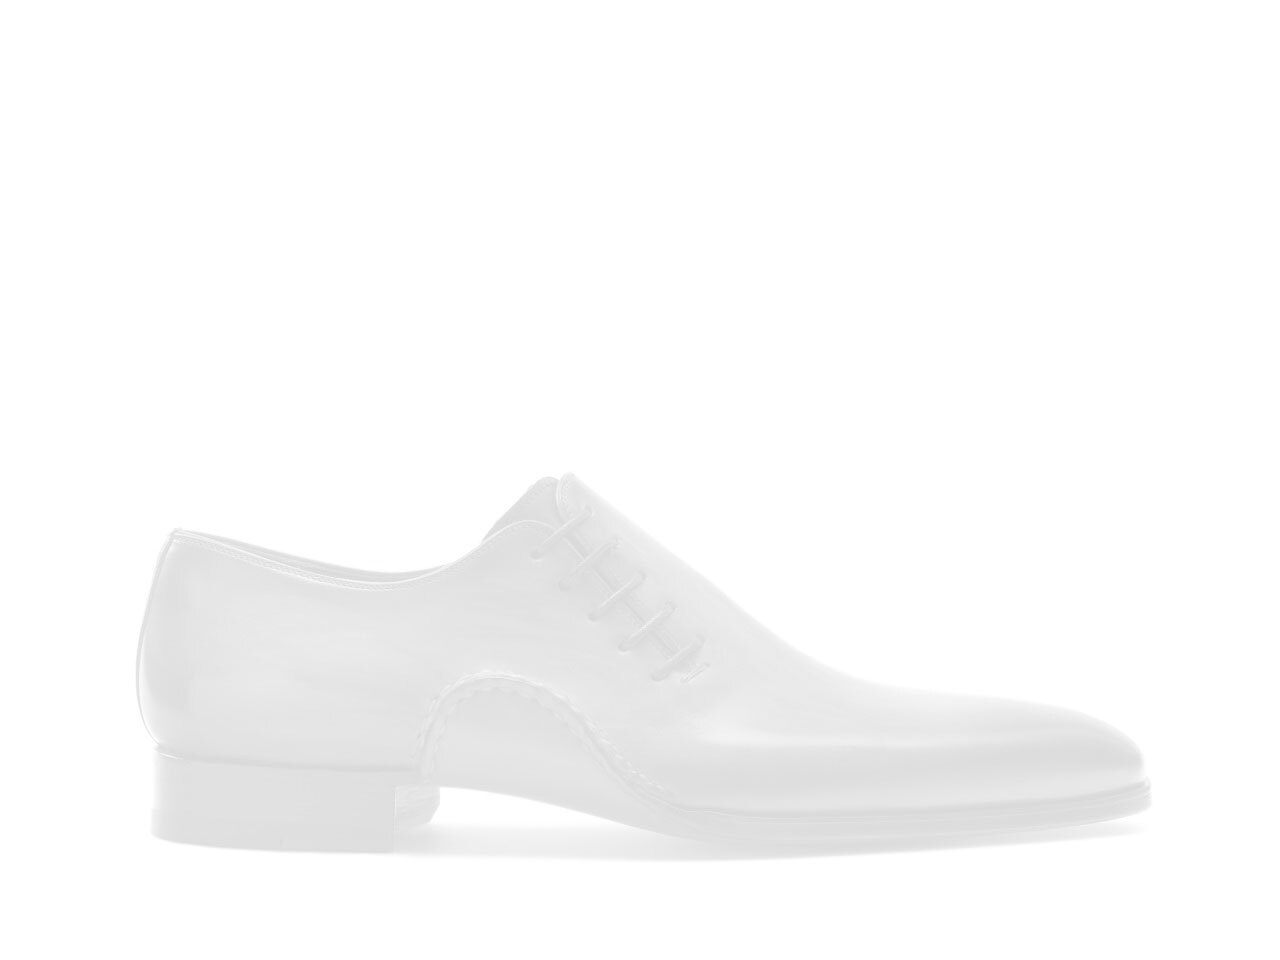 Sole of the Magnanni Volar Grey Men's Sneakers